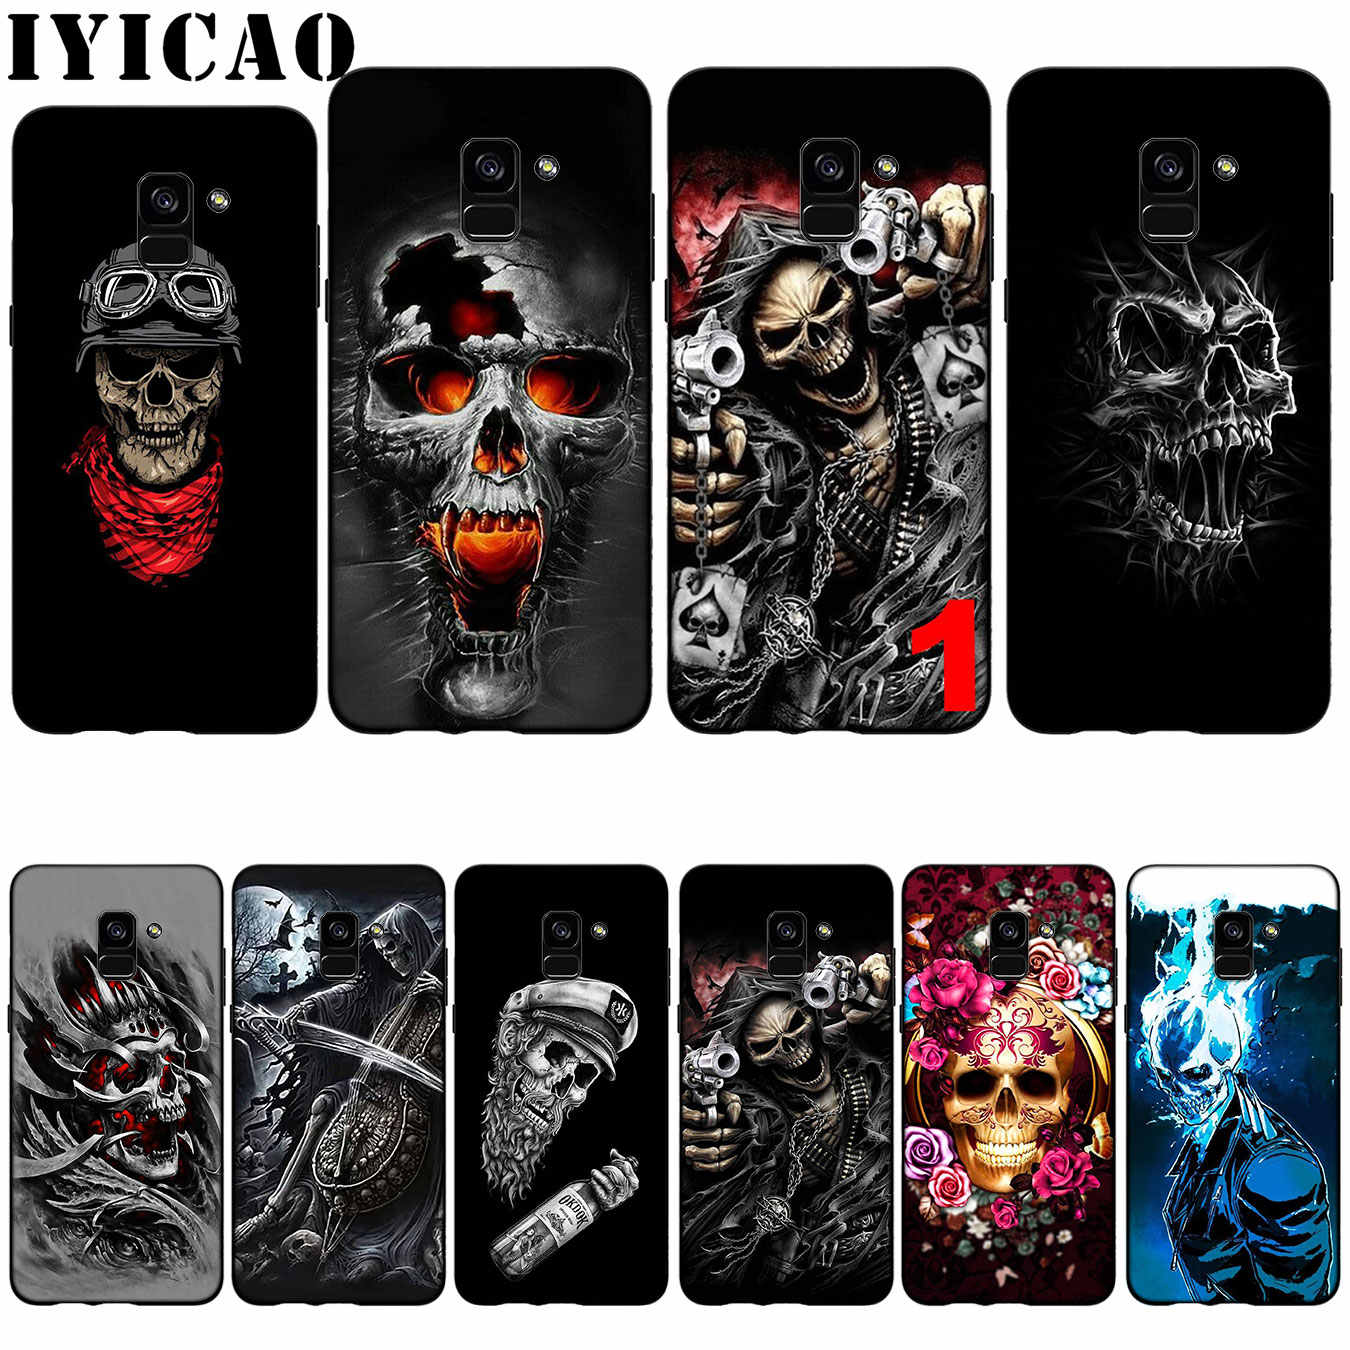 IYICAO Grim Reaper Skull Skeleton Silicone Soft Case for Samsung Galaxy A6 Plus A9 A8 A7 2018 A3 A5 2016 2017 Note 9 8